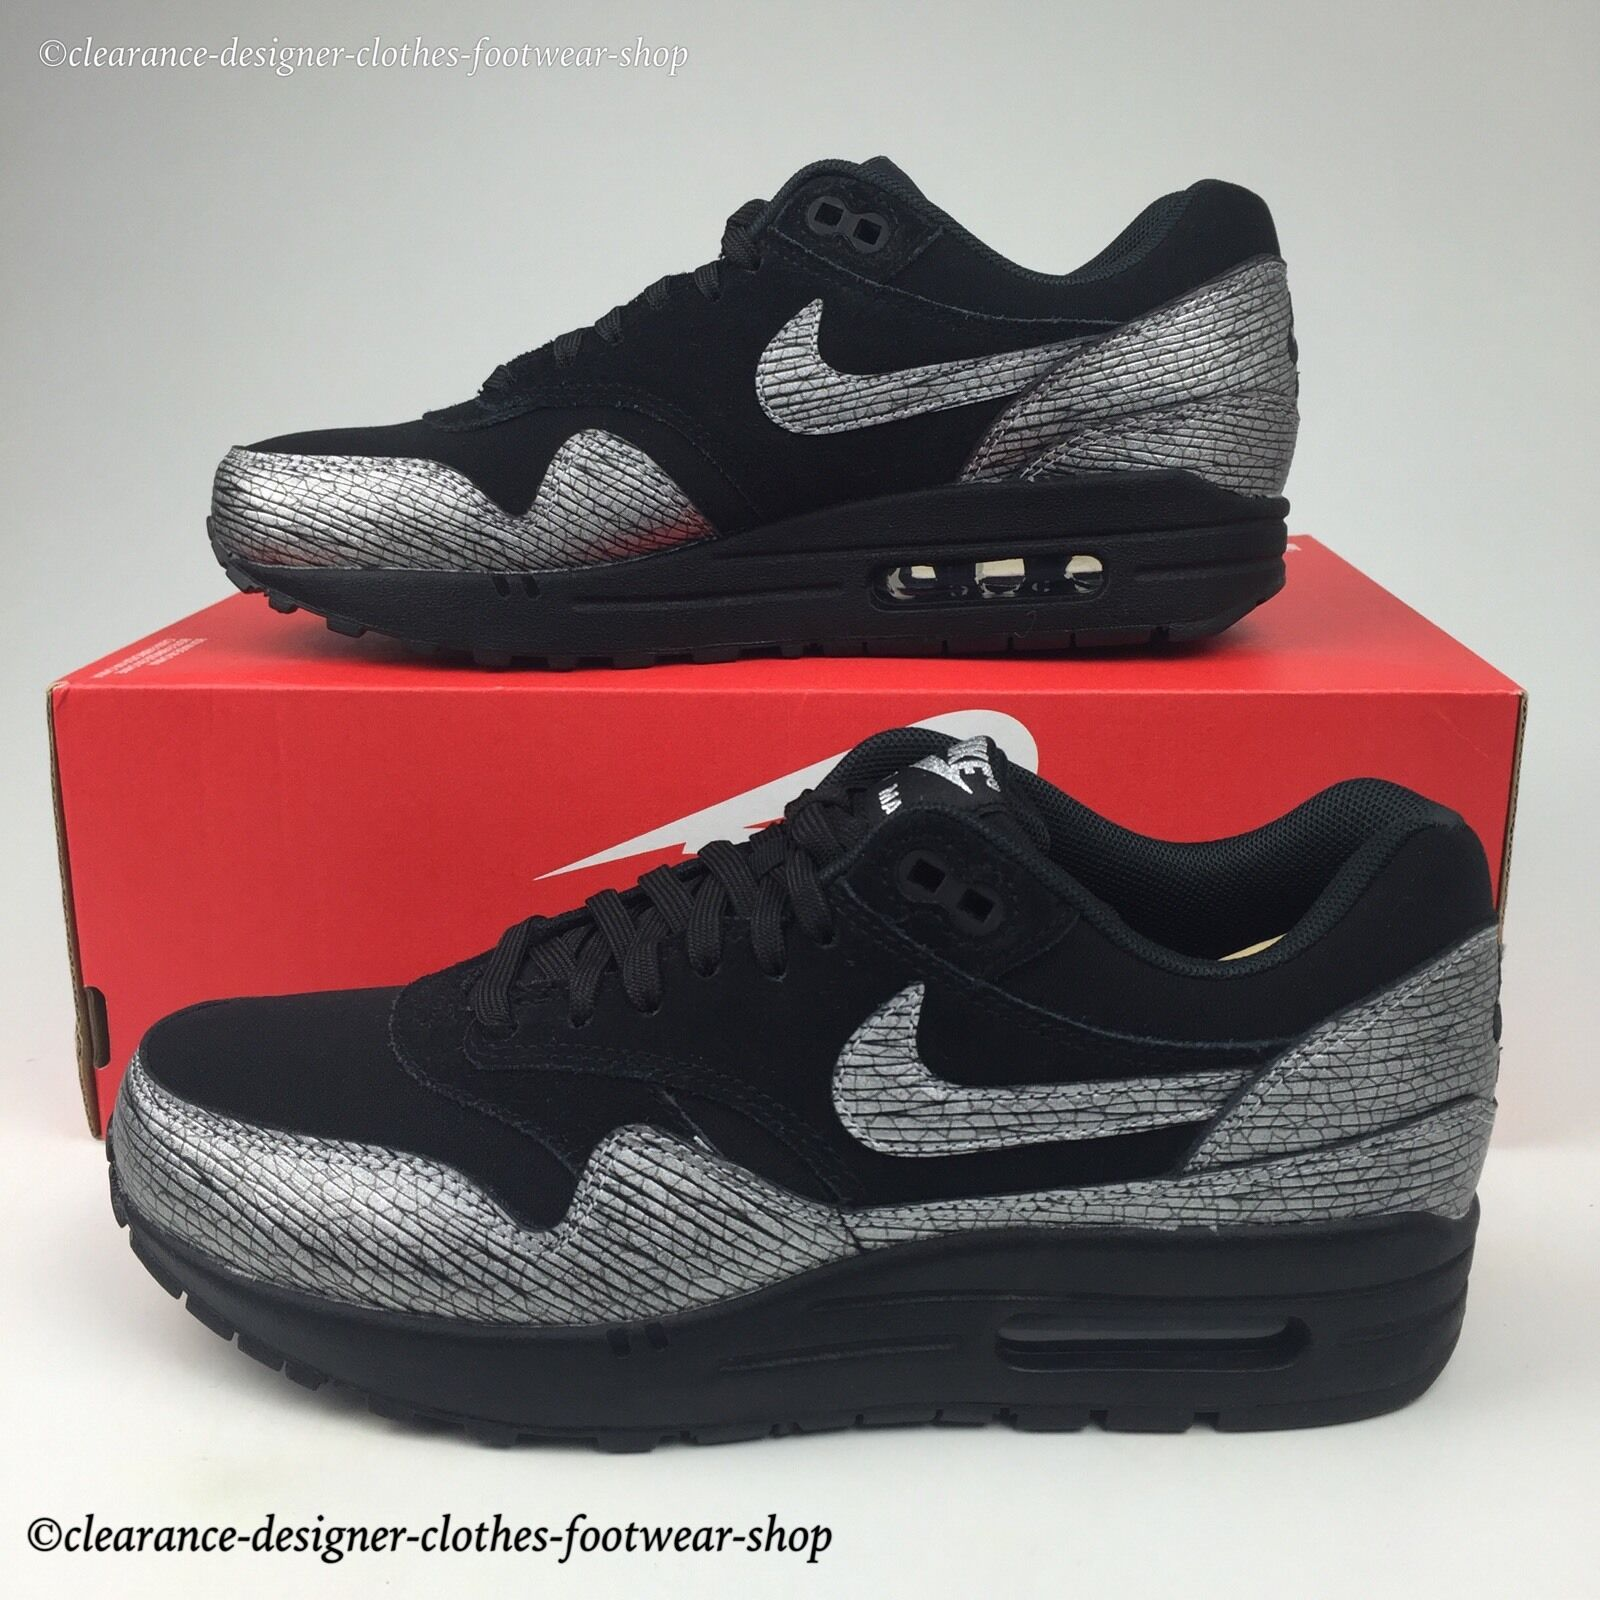 NIKE AIR MAX 1 PREMIUM PREMIUM PREMIUM TRAINERS Femme GIRLS LADIES CASUAL chaussures5  125 43ff18